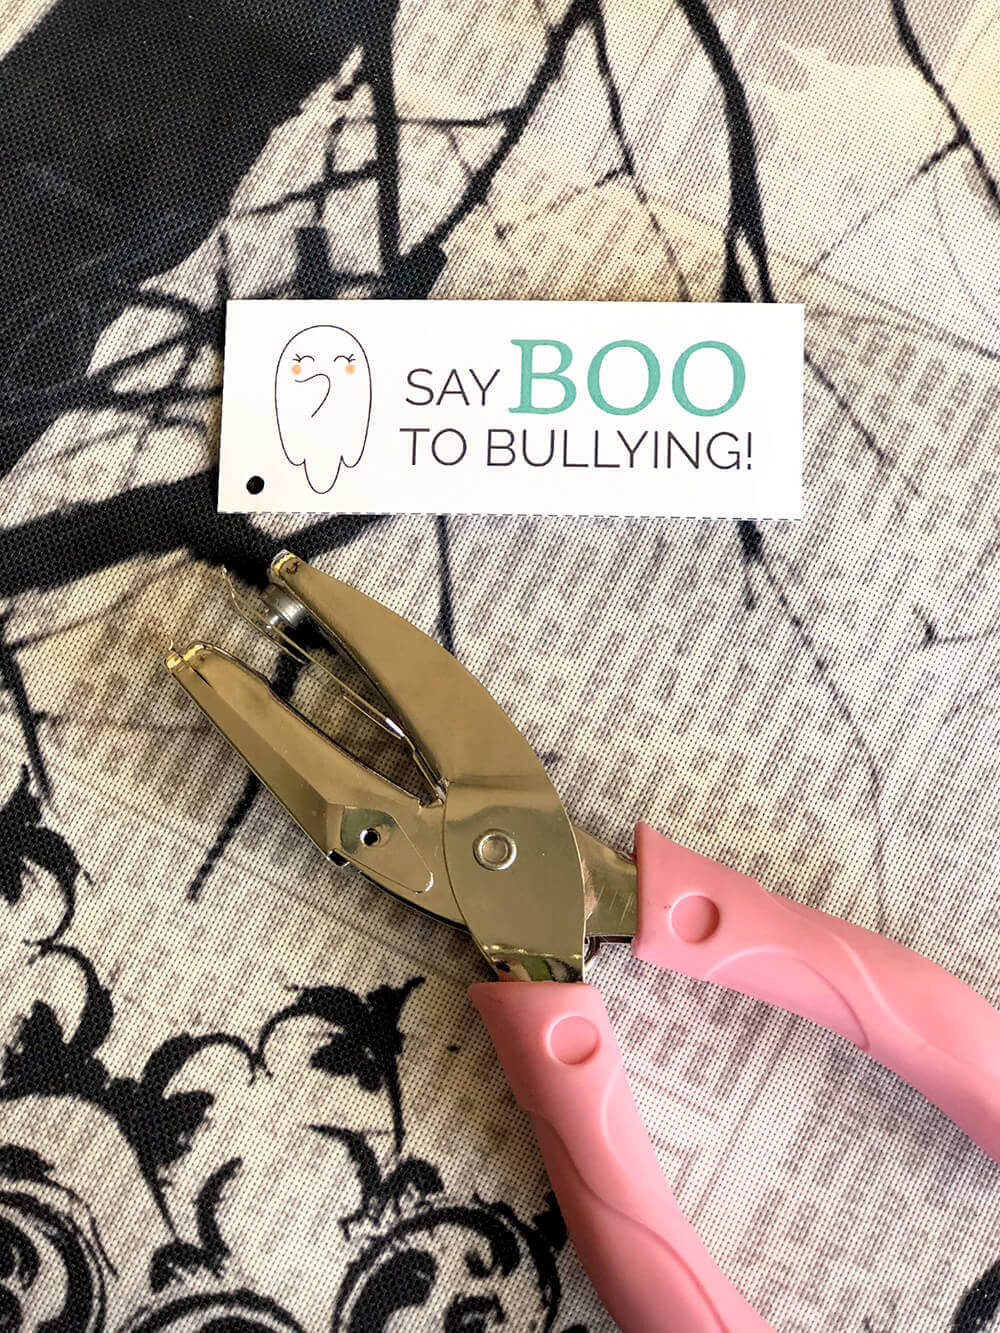 Say boo to bullying printable tag from Cultivate Kindness Box